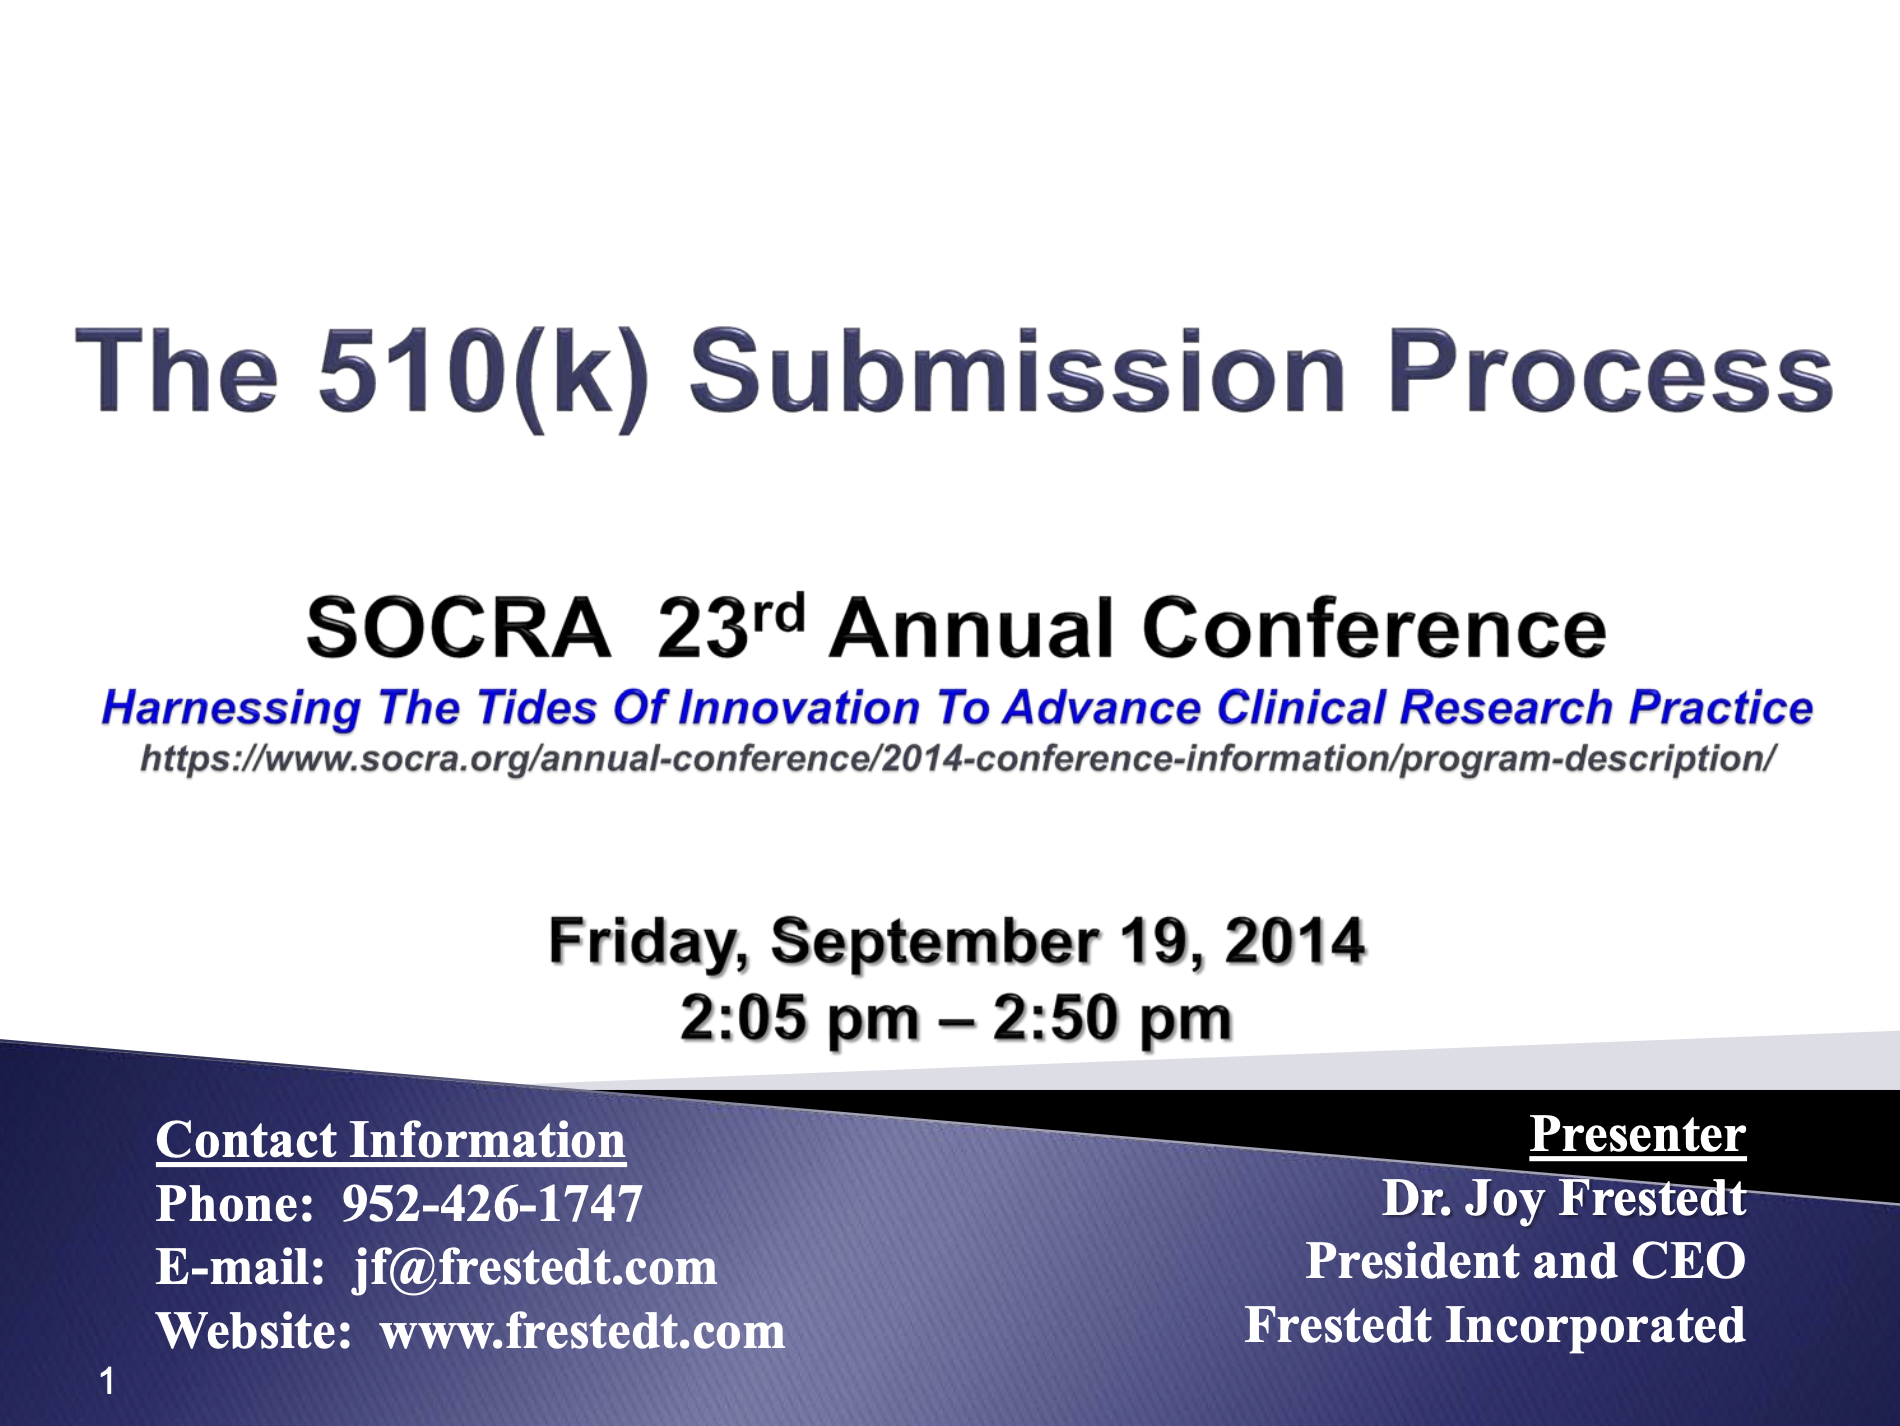 SOCRA 23rd Annual Conference: 510(k) Submission Process Flyer